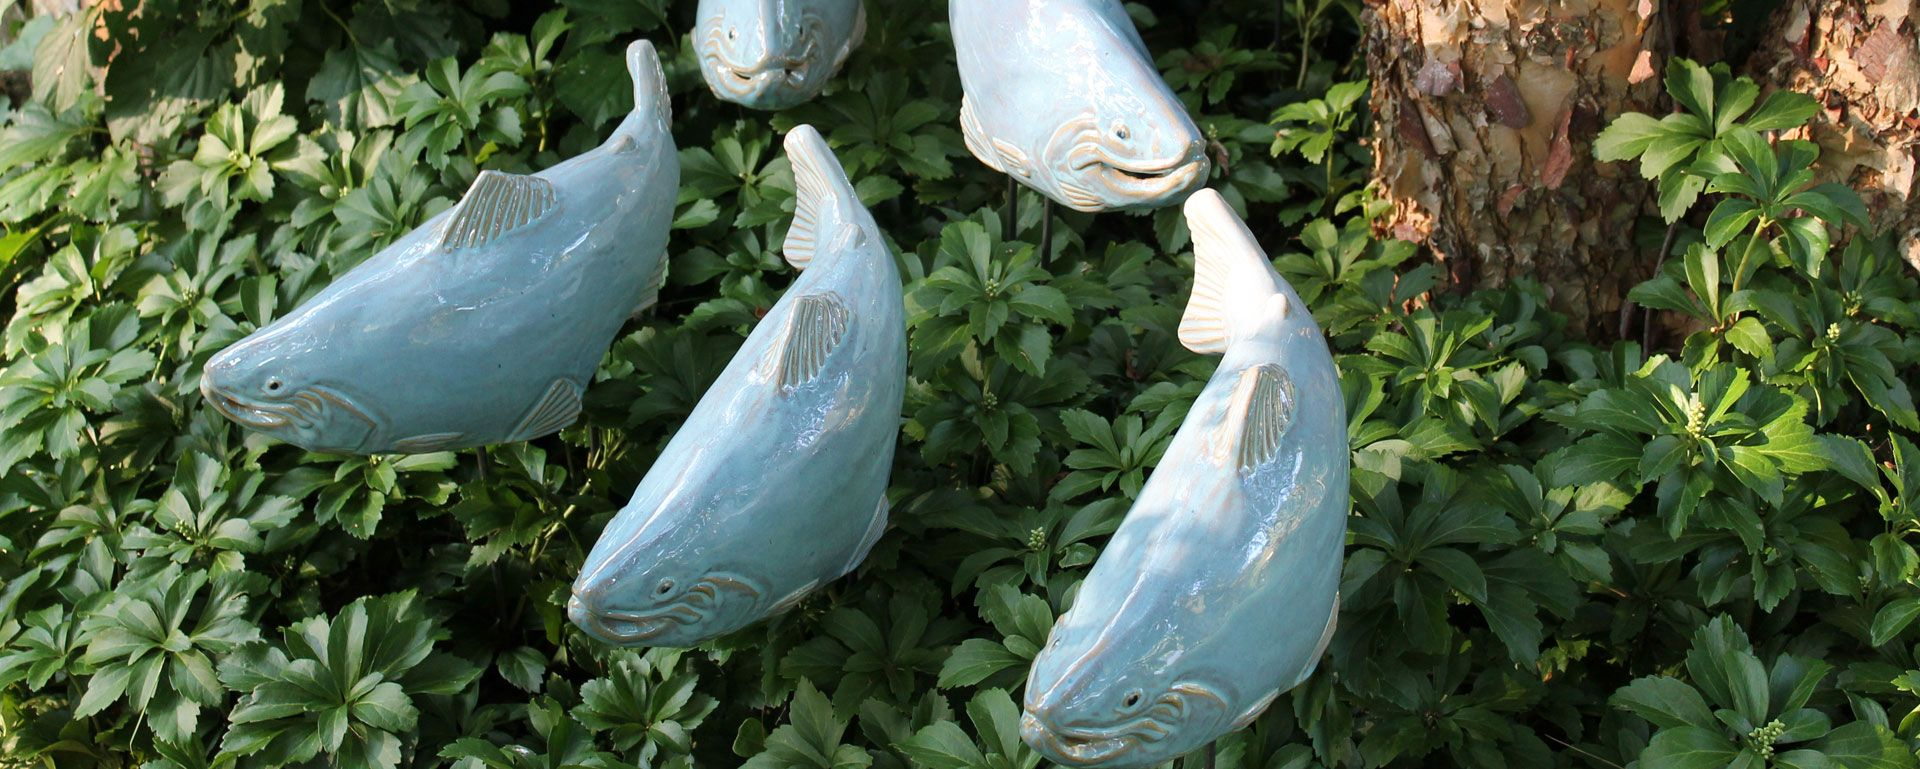 Shop garden art find garden sculpture buy fish garden for Fish garden statue